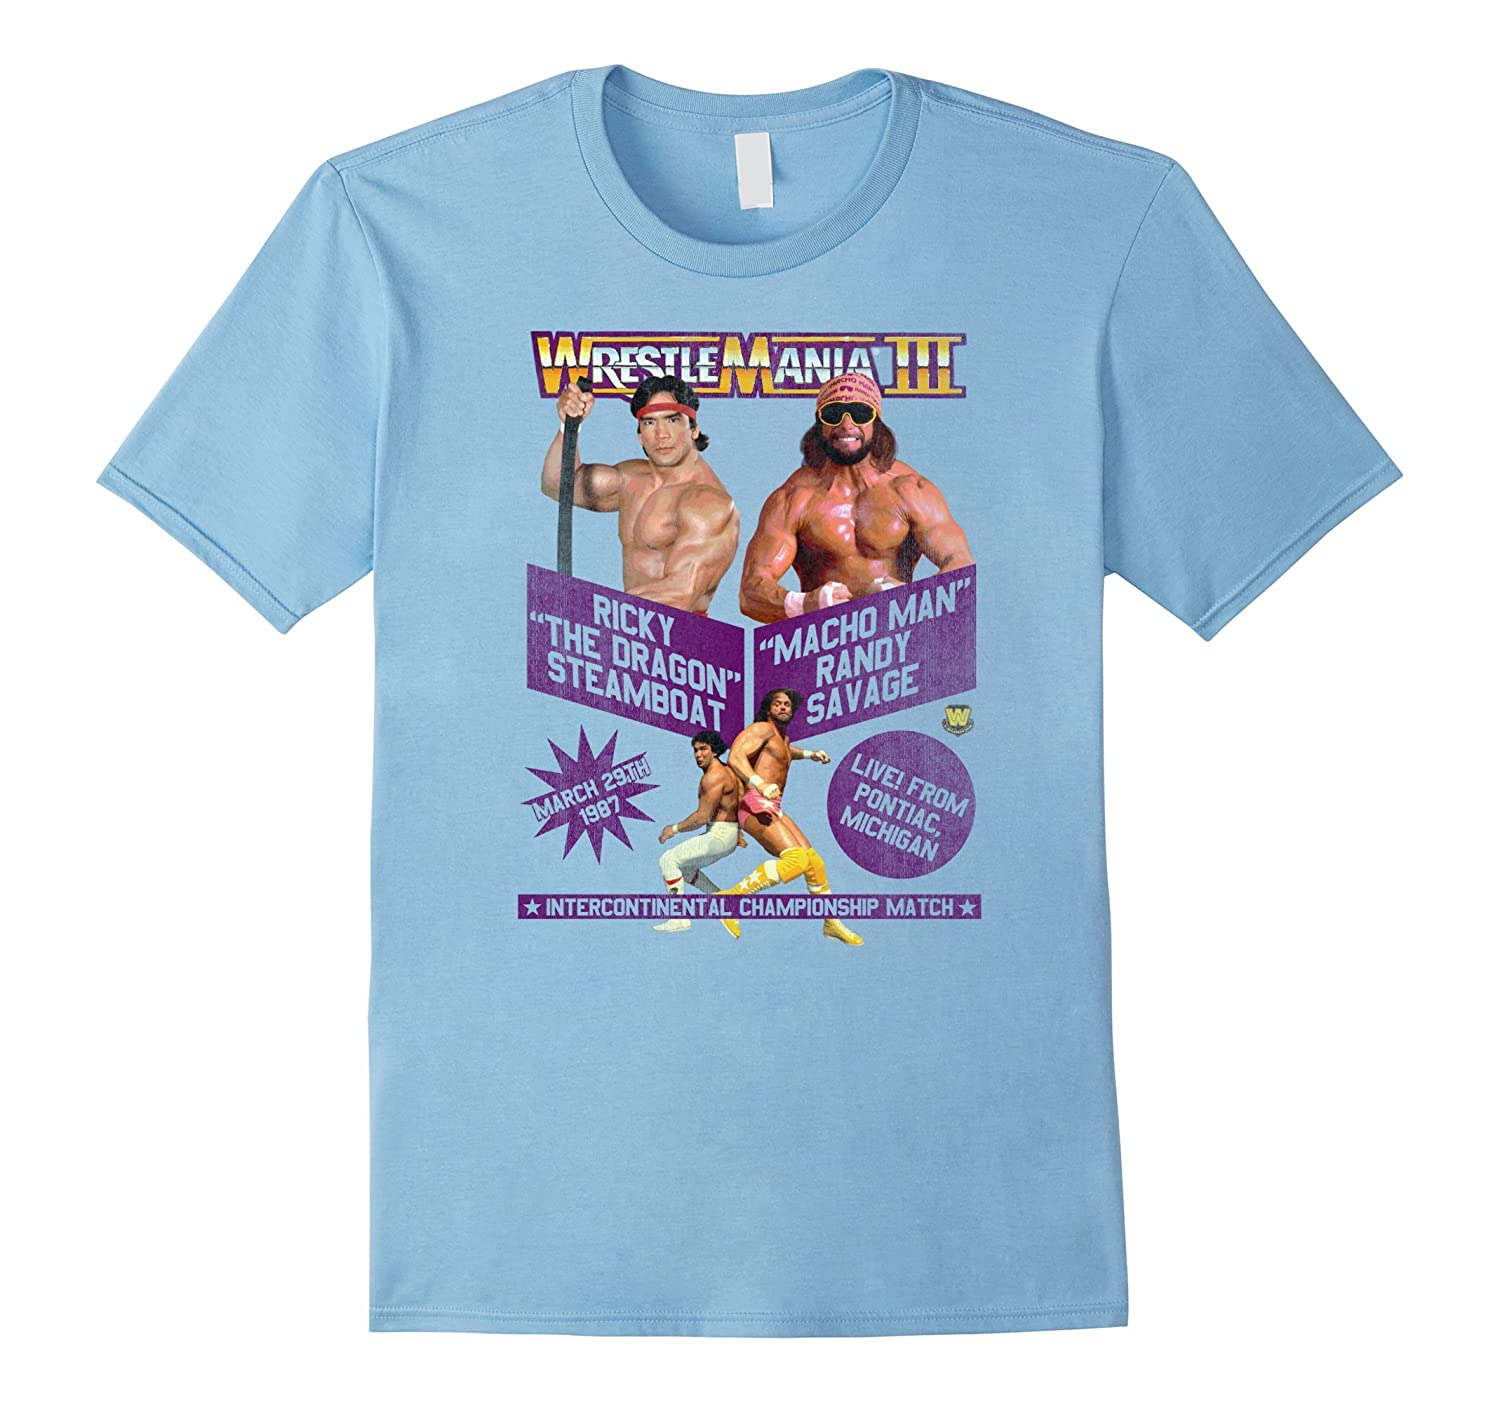 71ce04cc Imported Machine wash cold with like colors, dry low heat. Officially  Licensed WWE merchandise. Professionally printed. Great as a gift.